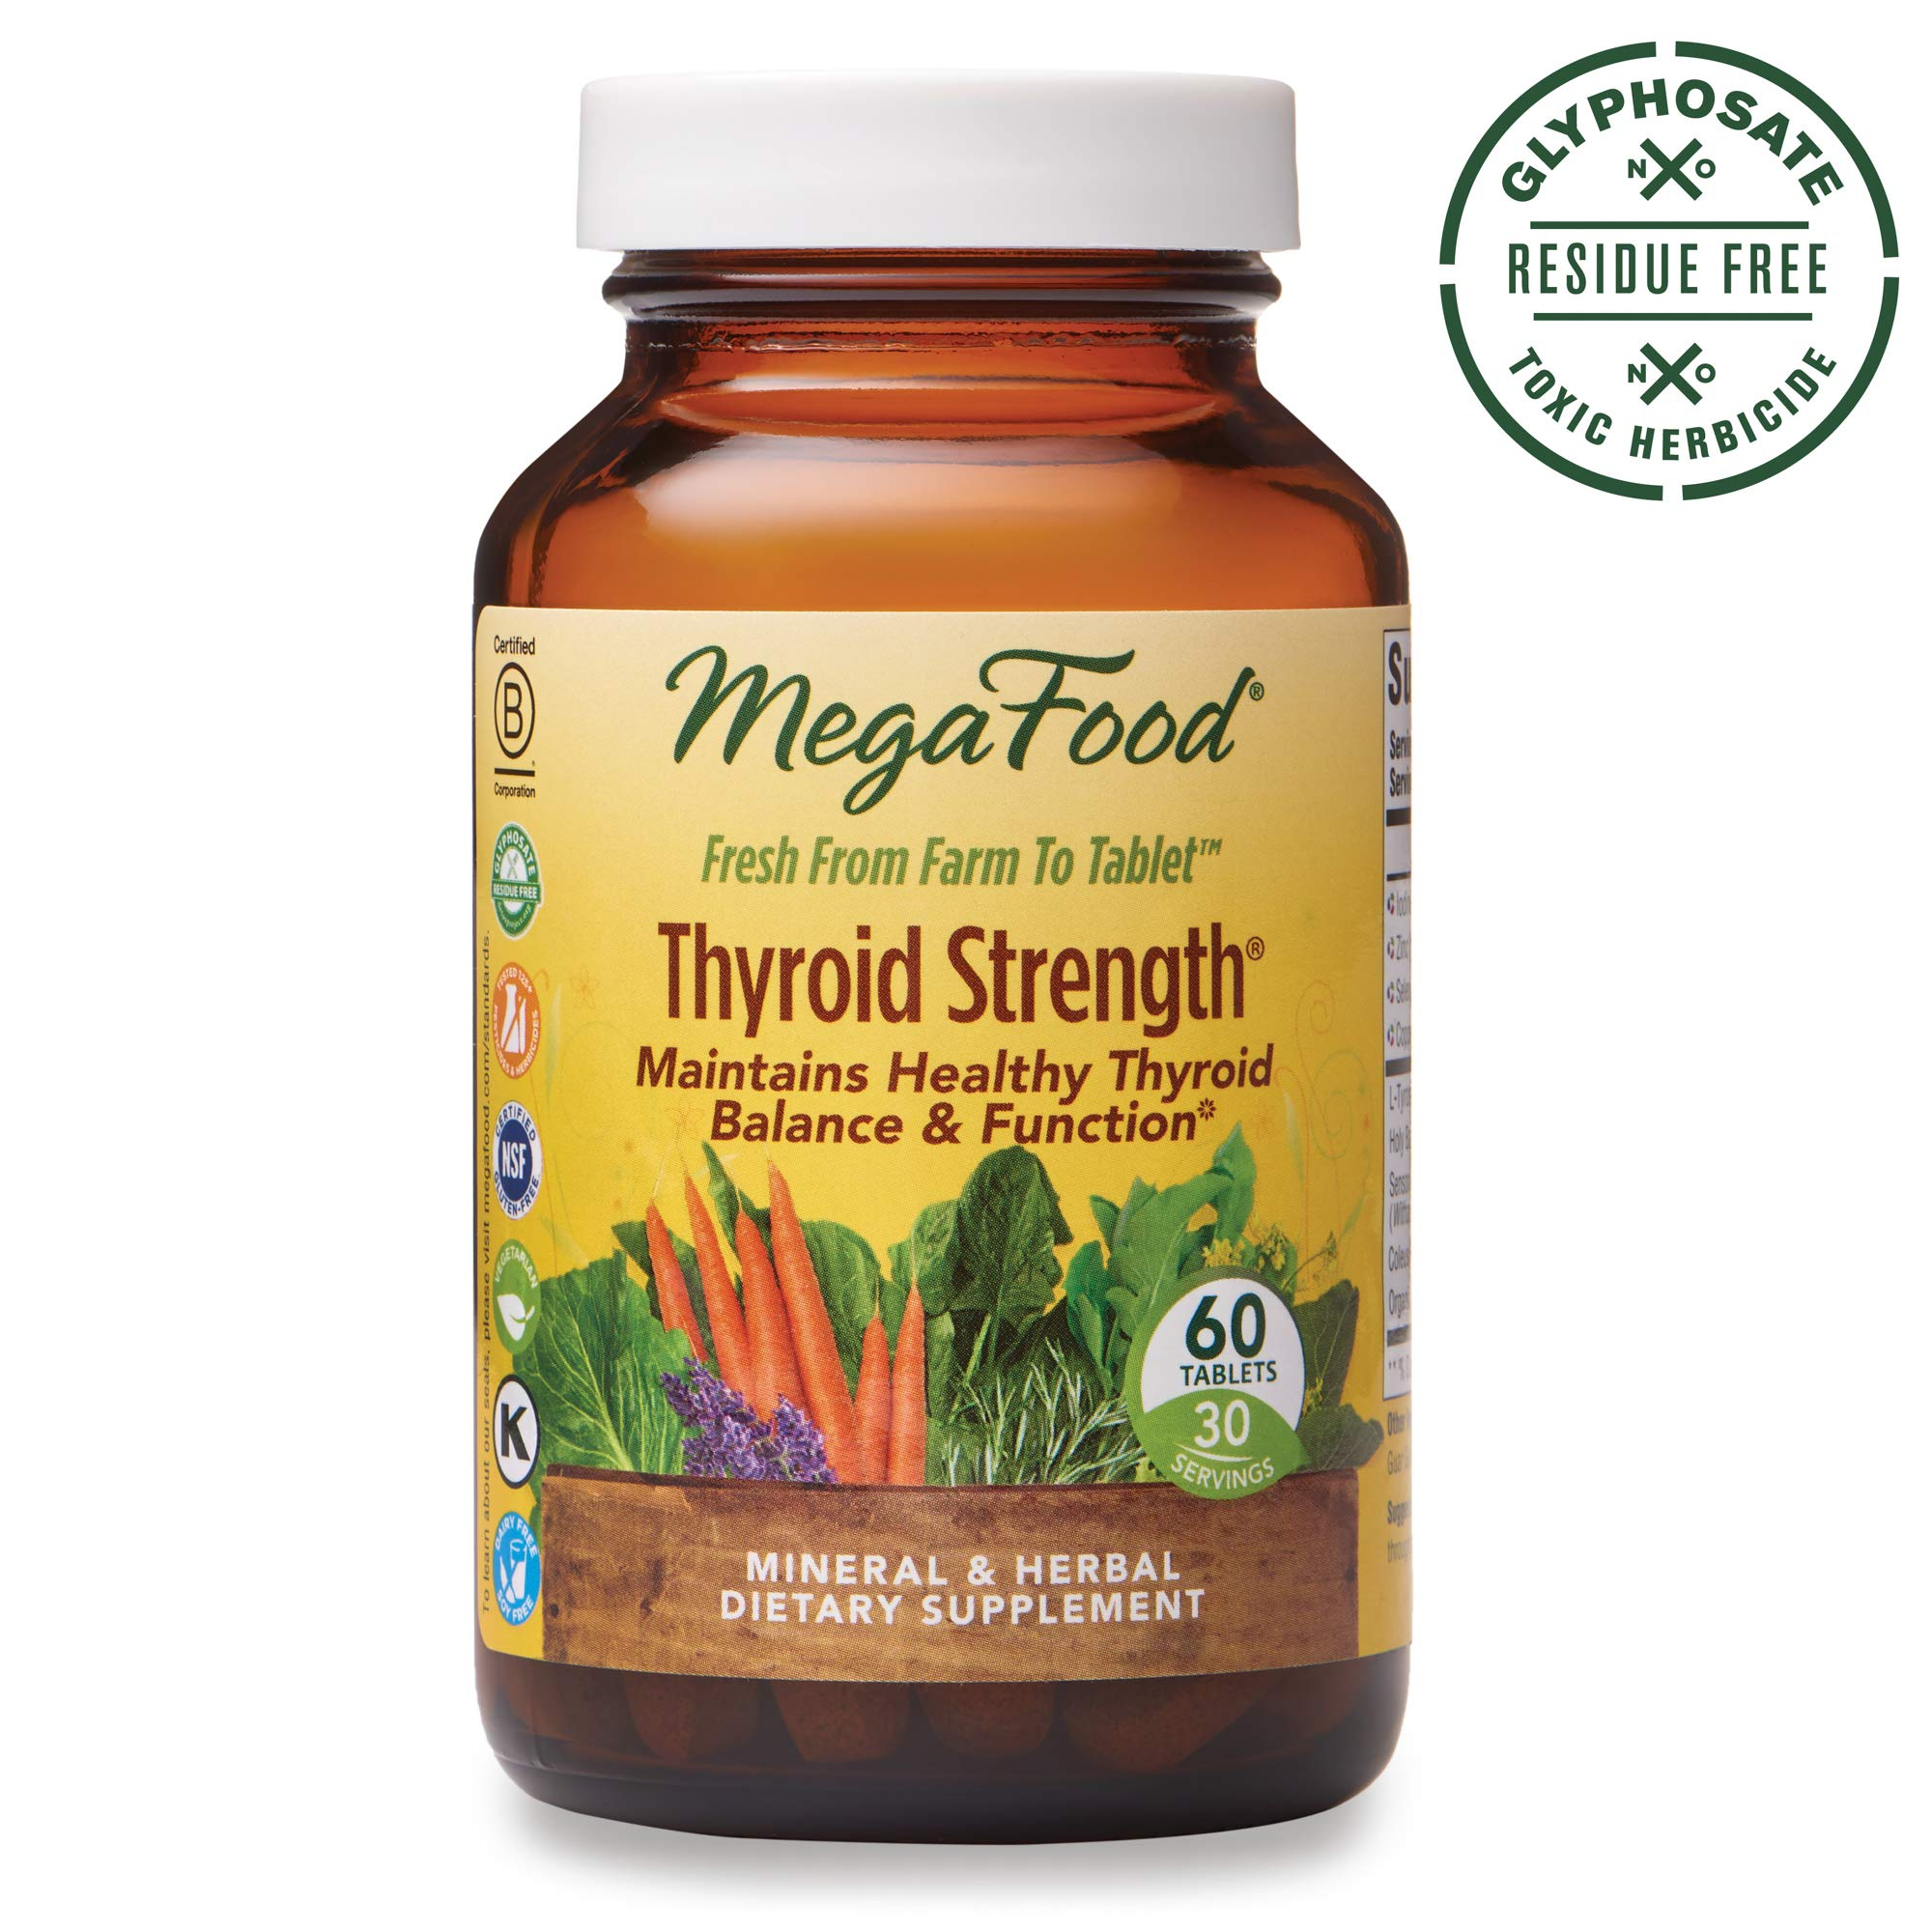 MegaFood, Thyroid Strength, Supports Thyroid Health, Mineral and Herbal Supplement with Herbs, Vegan, 60 Tablets (30 Servings) by MegaFood